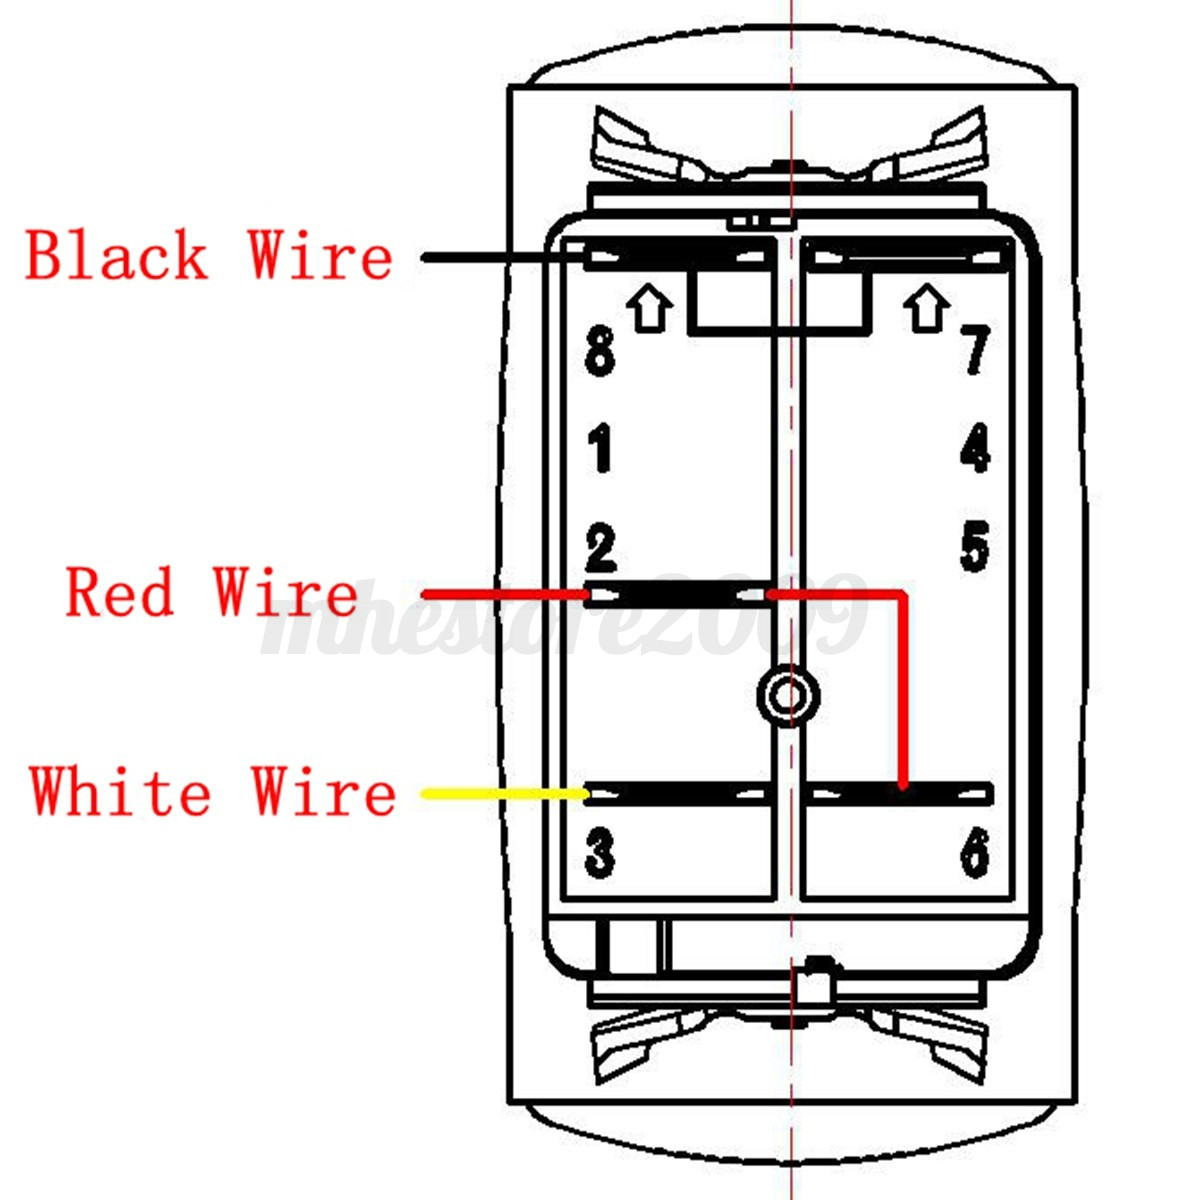 Dpdt Center Off Momentary Switch Wiring Diagram Drawing Spdt Foot On Motor